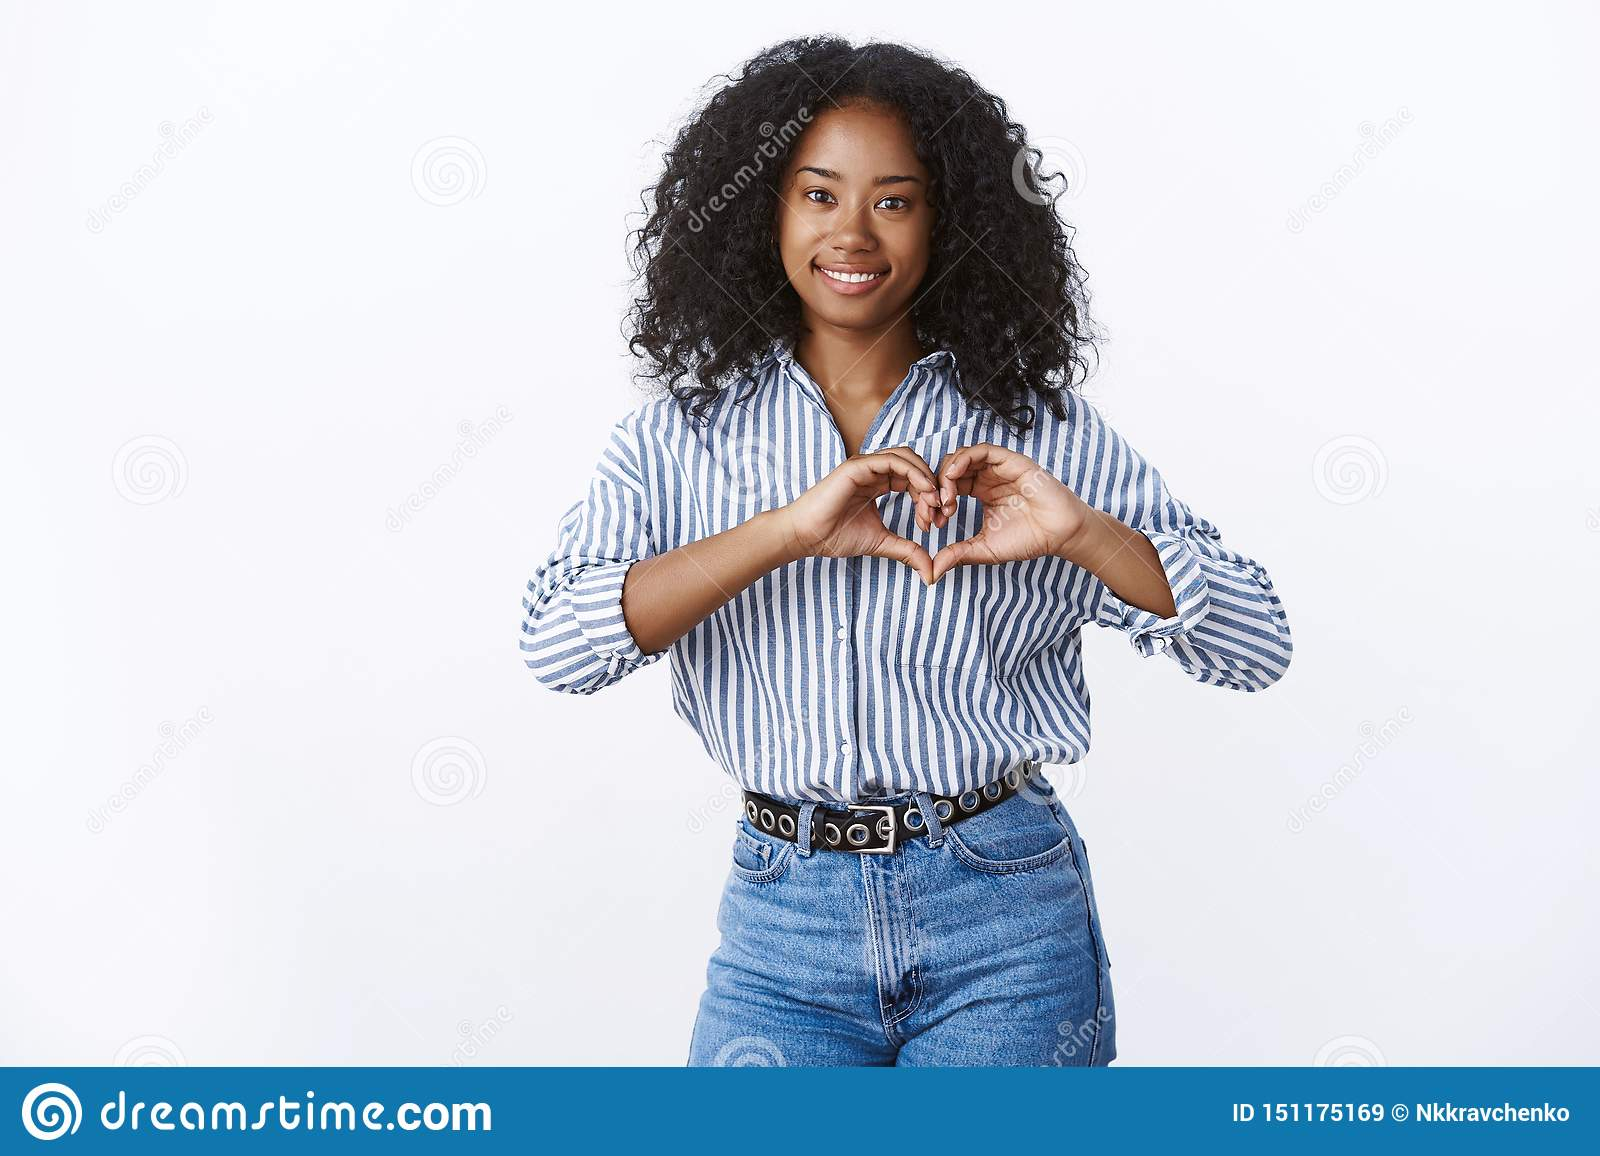 Friendly-looking charming happy young dark-skinned female showing heart gesture romantic love sign smiling broadly